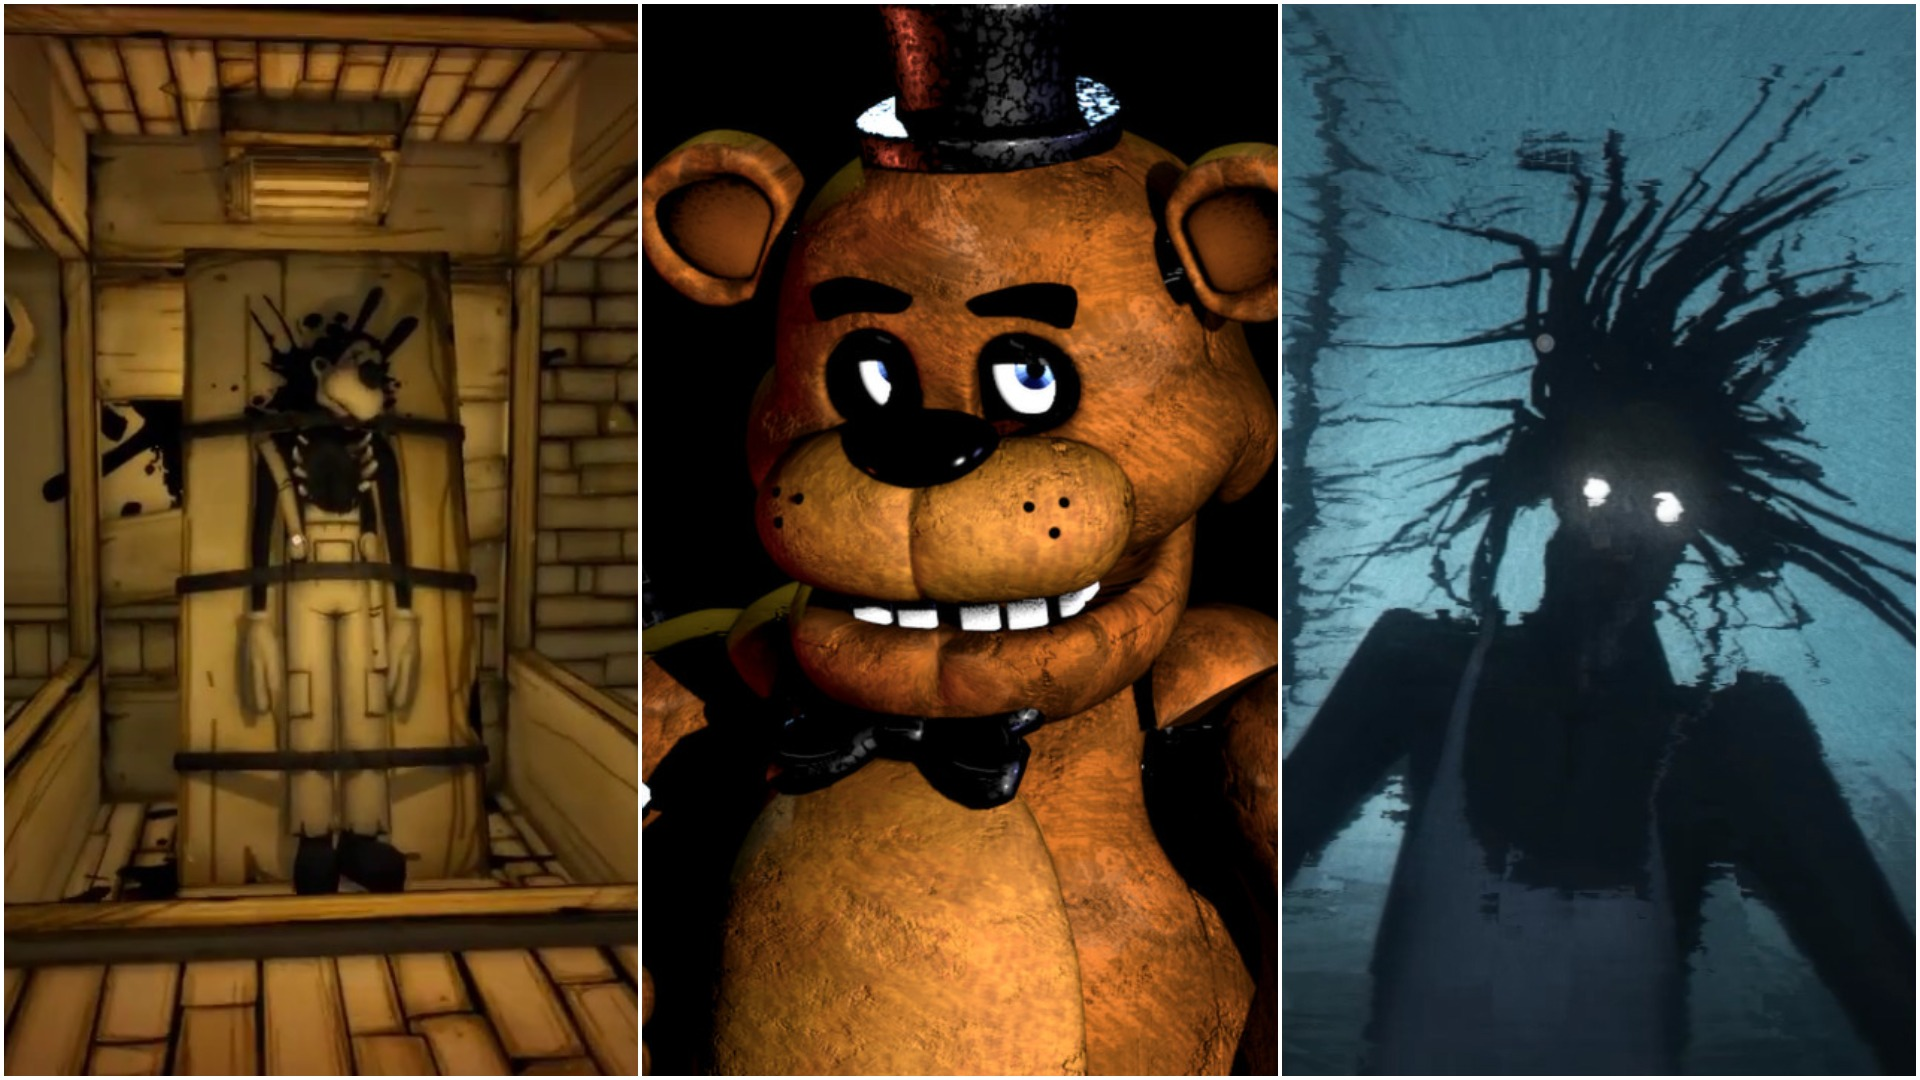 Top 7 Creepiest Indie Games